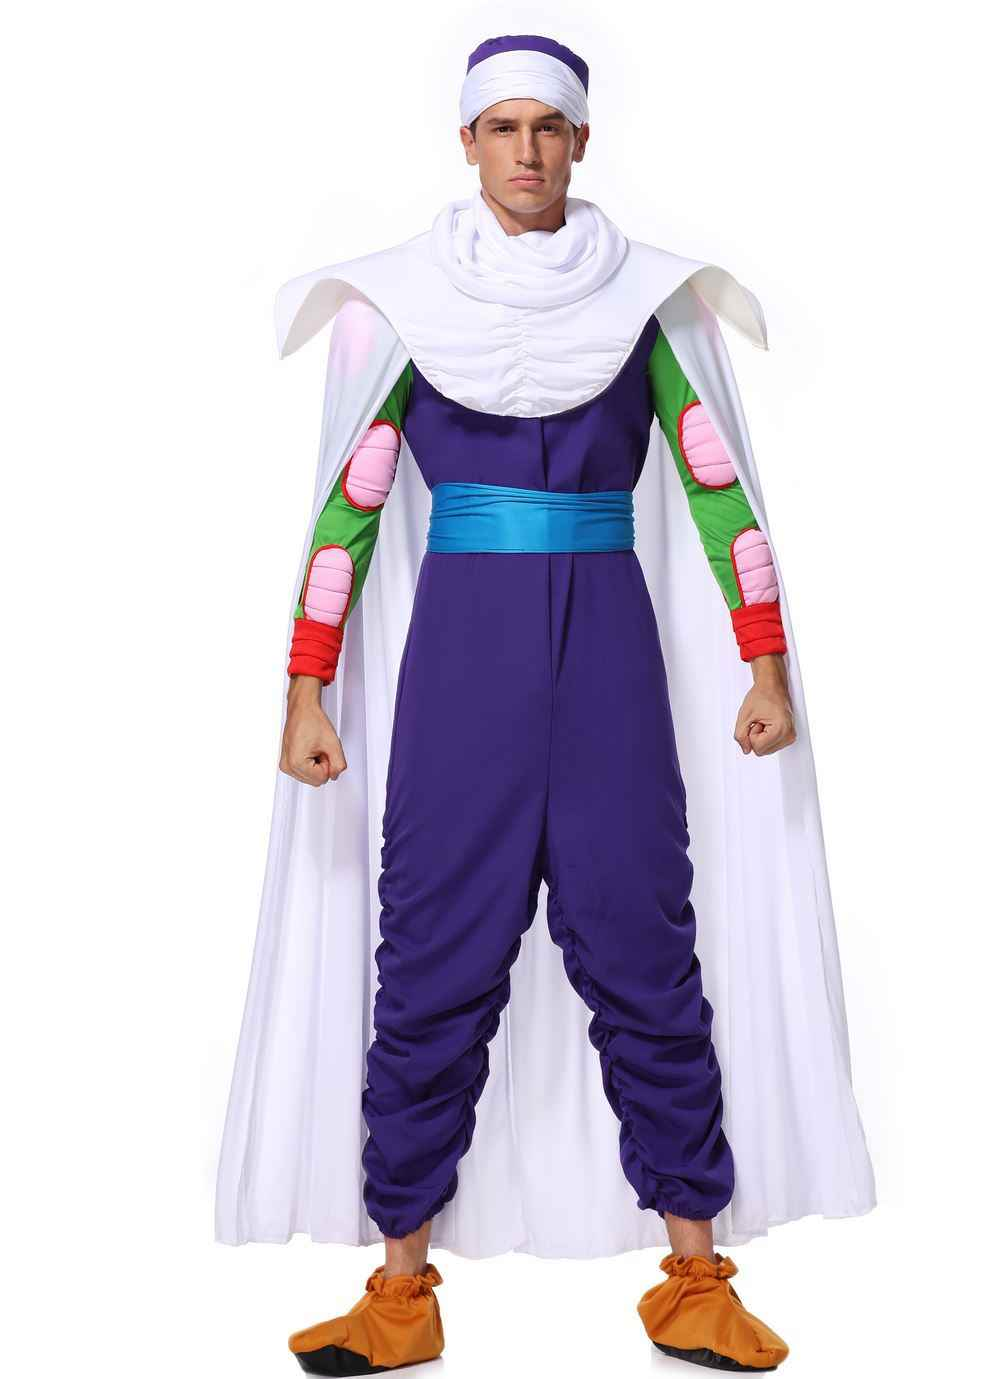 Déguisement de Cosplay végéta de luxe Anime DRAGON BALL adulte Super Saiyan bataille Spandex combinaisons déguisement d'halloween pour adulte